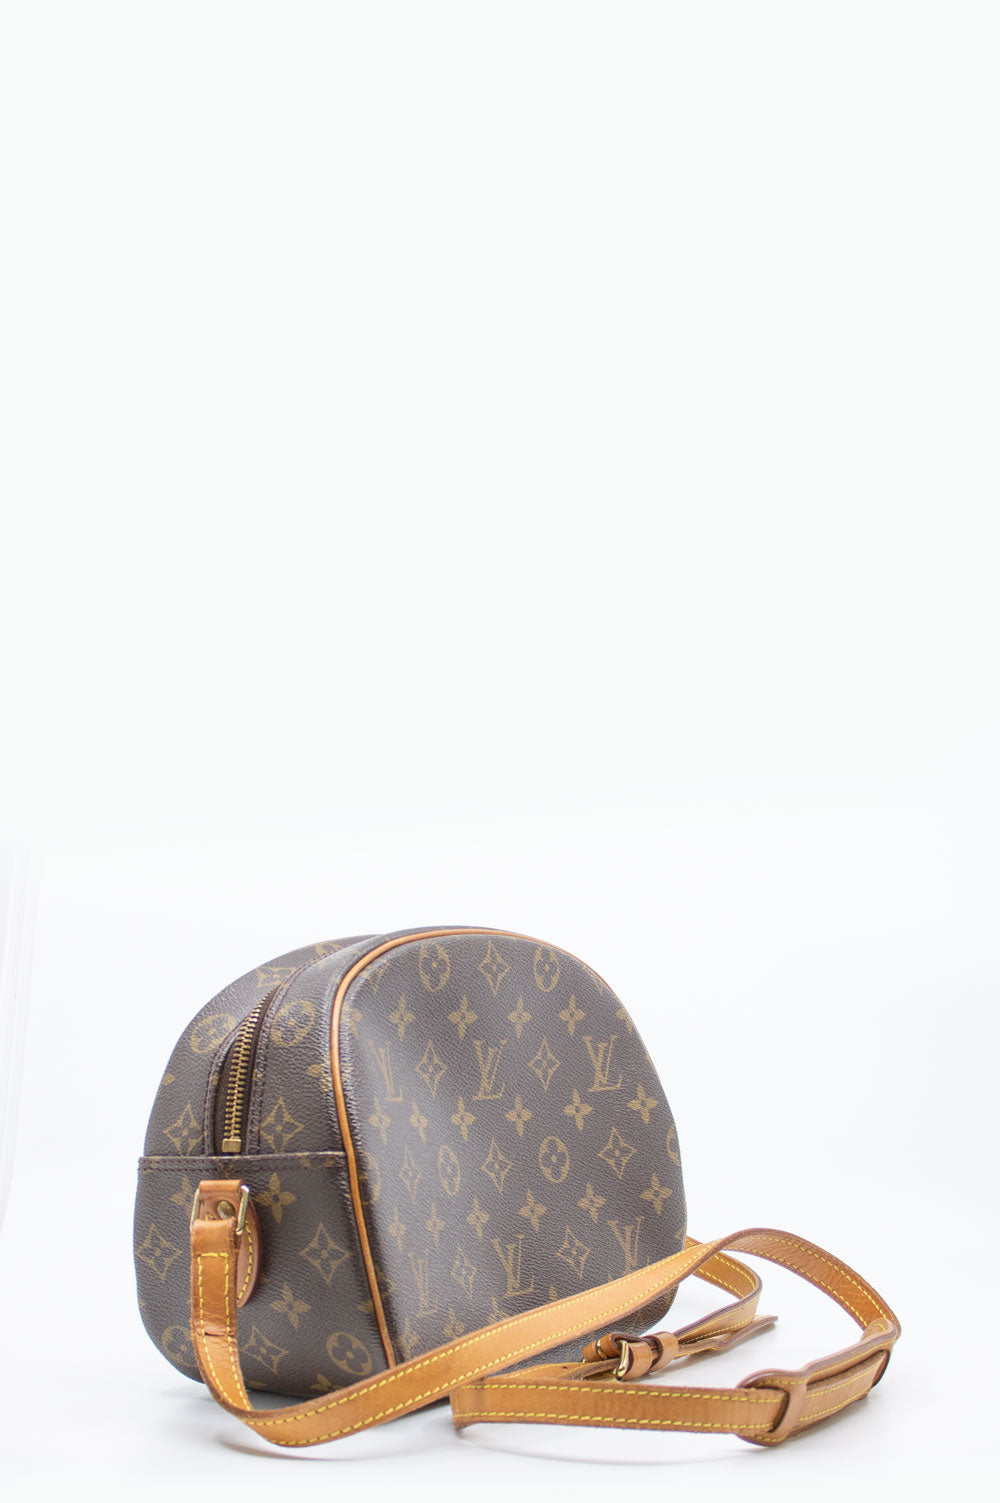 LOUIS VUITTON Vintage Blois Bag